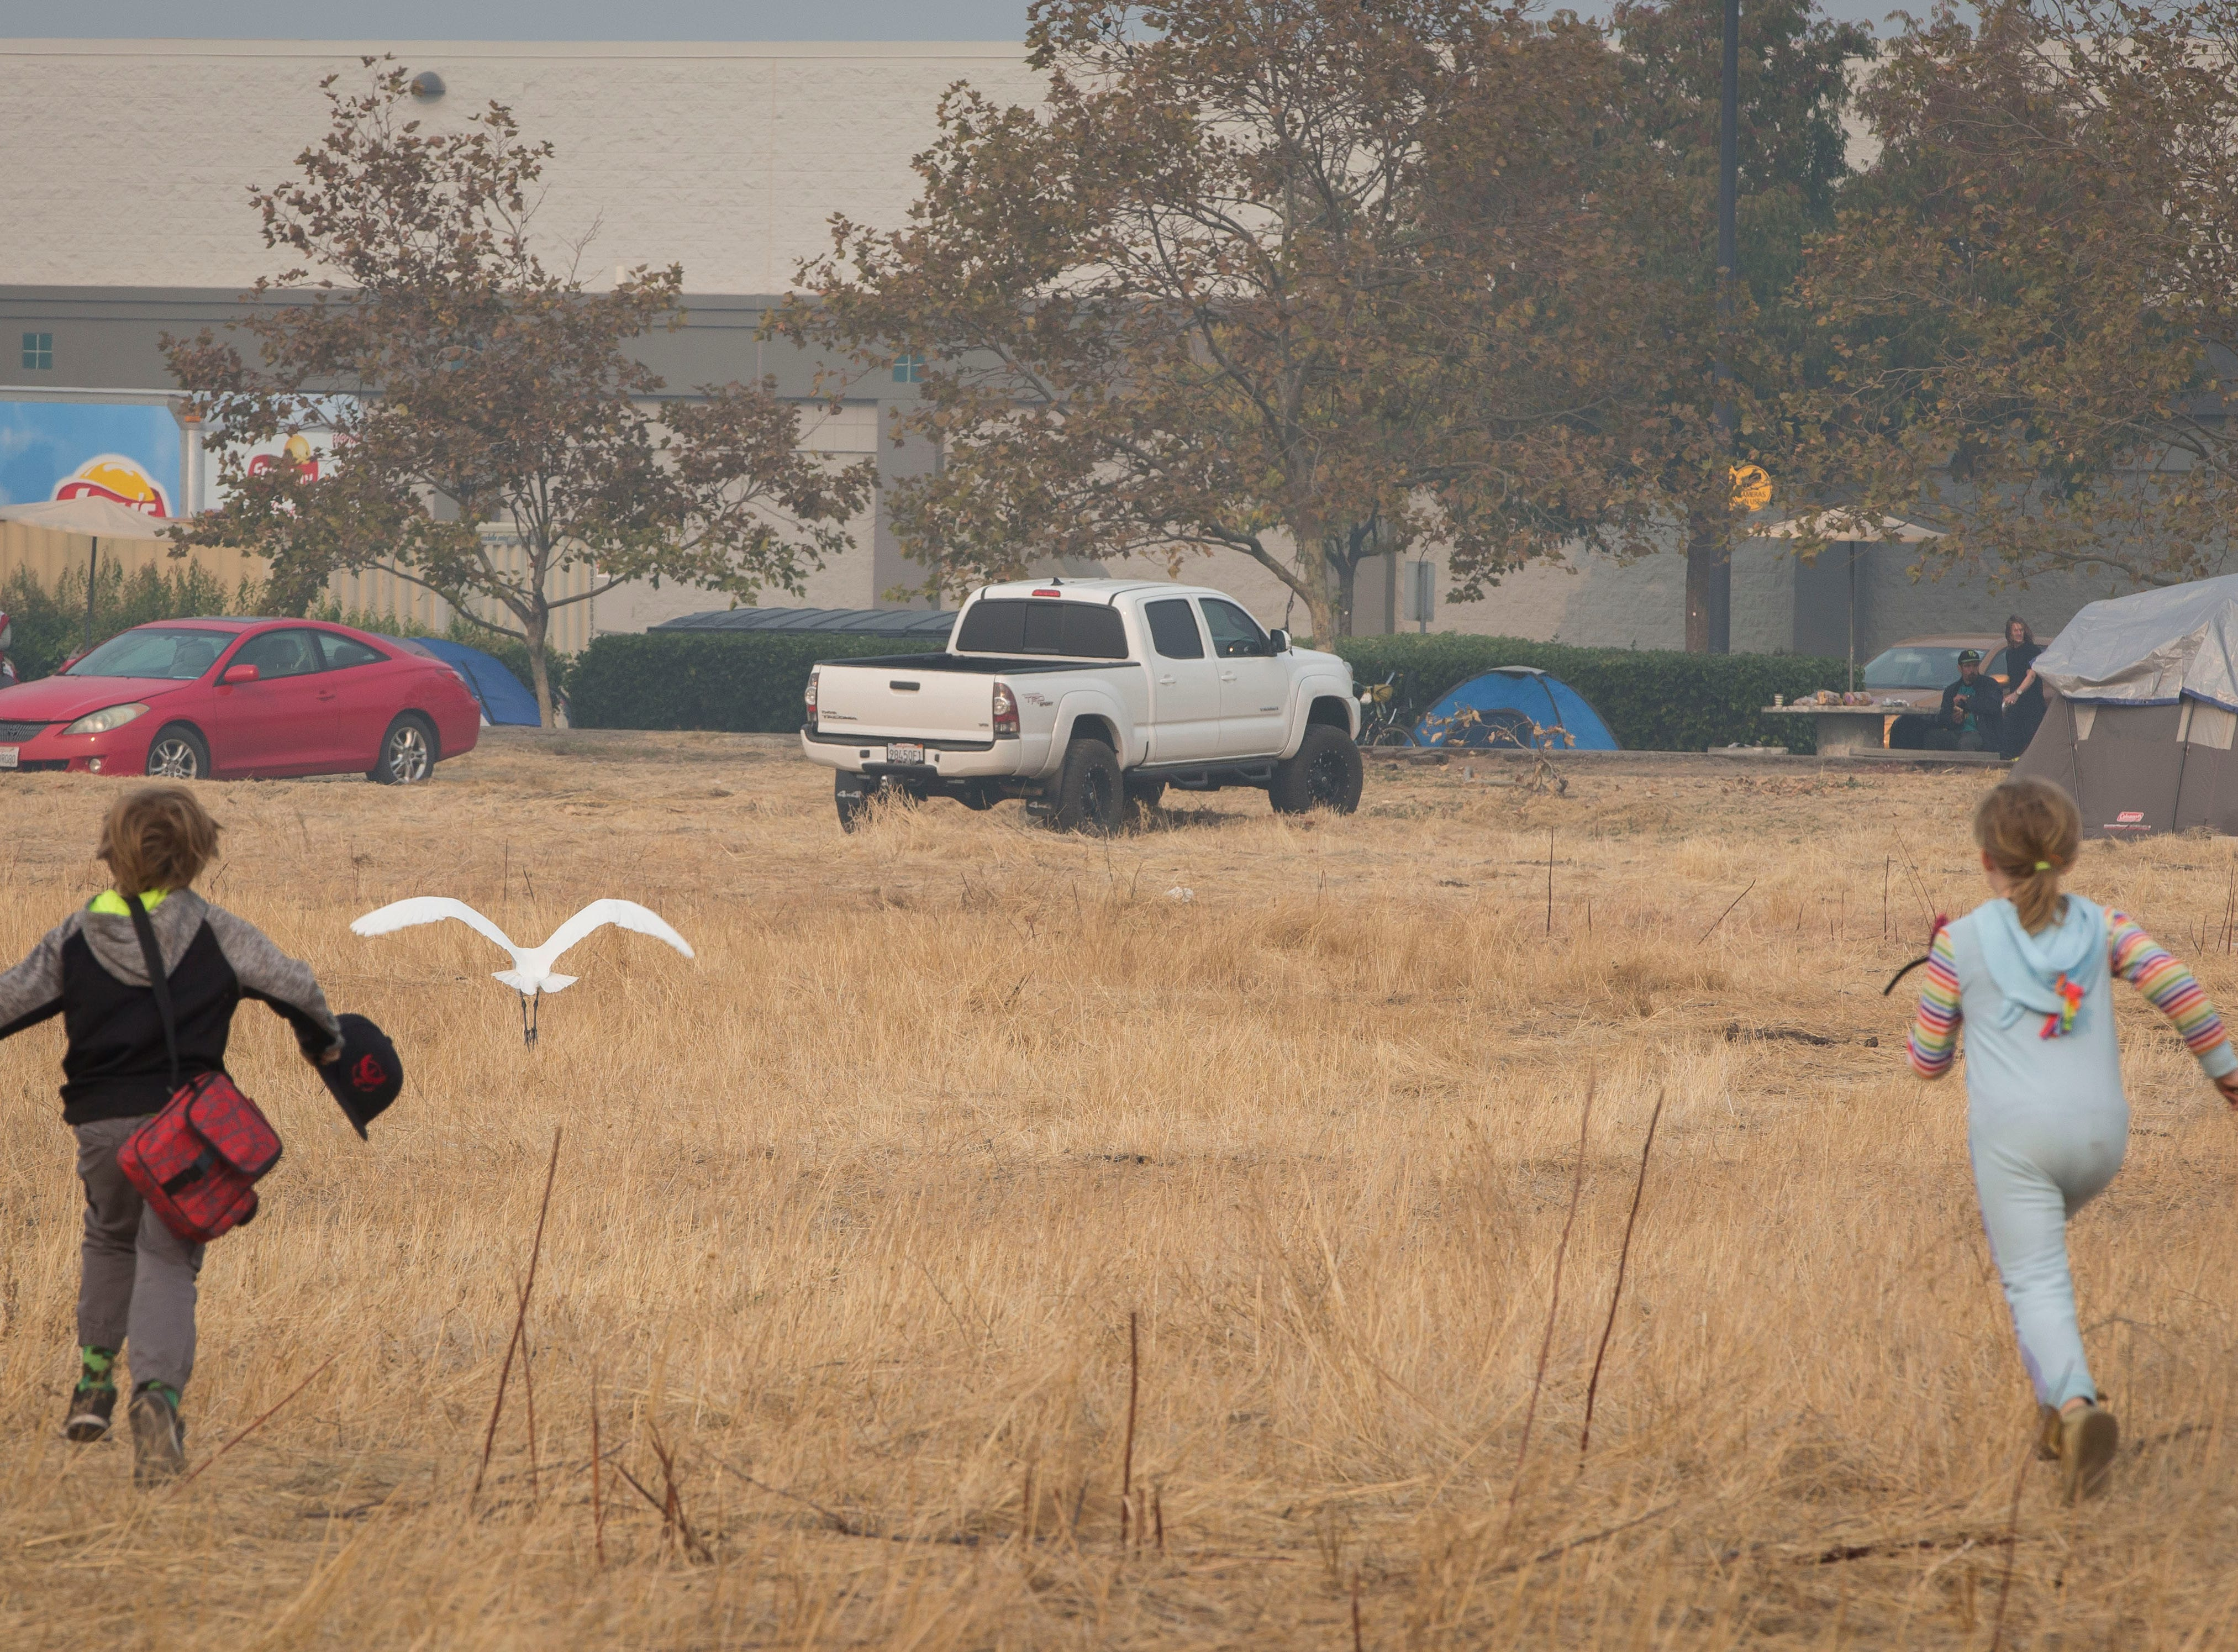 Michael Belcher, 9, left and his sister Zoeylee, 10, chase birds in a field next to where they are camping with their family at the Walmart in Chico, CA, Saturday Nov. 17, 2018. The Belcher family lost their home and vehicles to the Camp Fire.